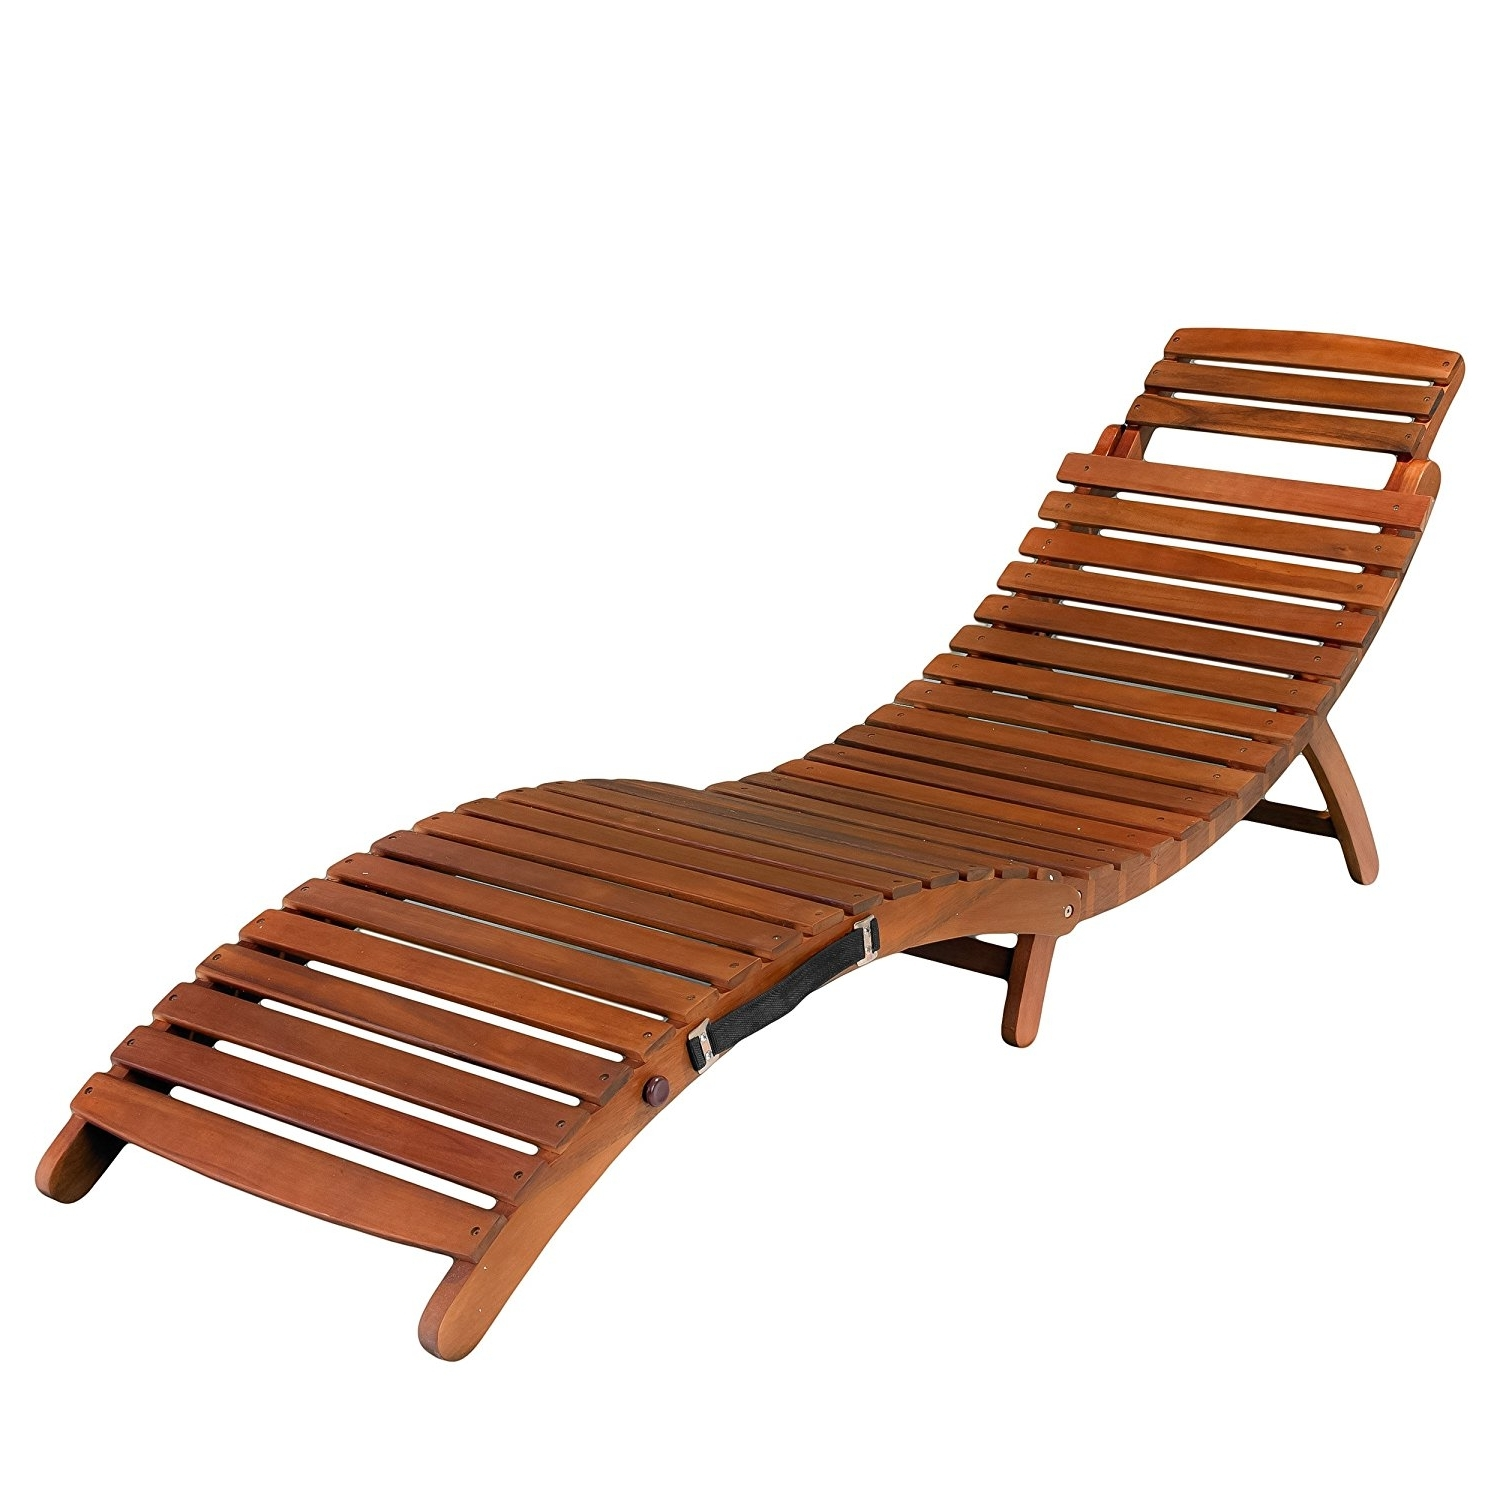 Wooden Outdoor Chaise Lounge Chairs For Newest Amazon: Best Selling Del Rio Wood Outdoor Chaise Lounge (View 7 of 15)